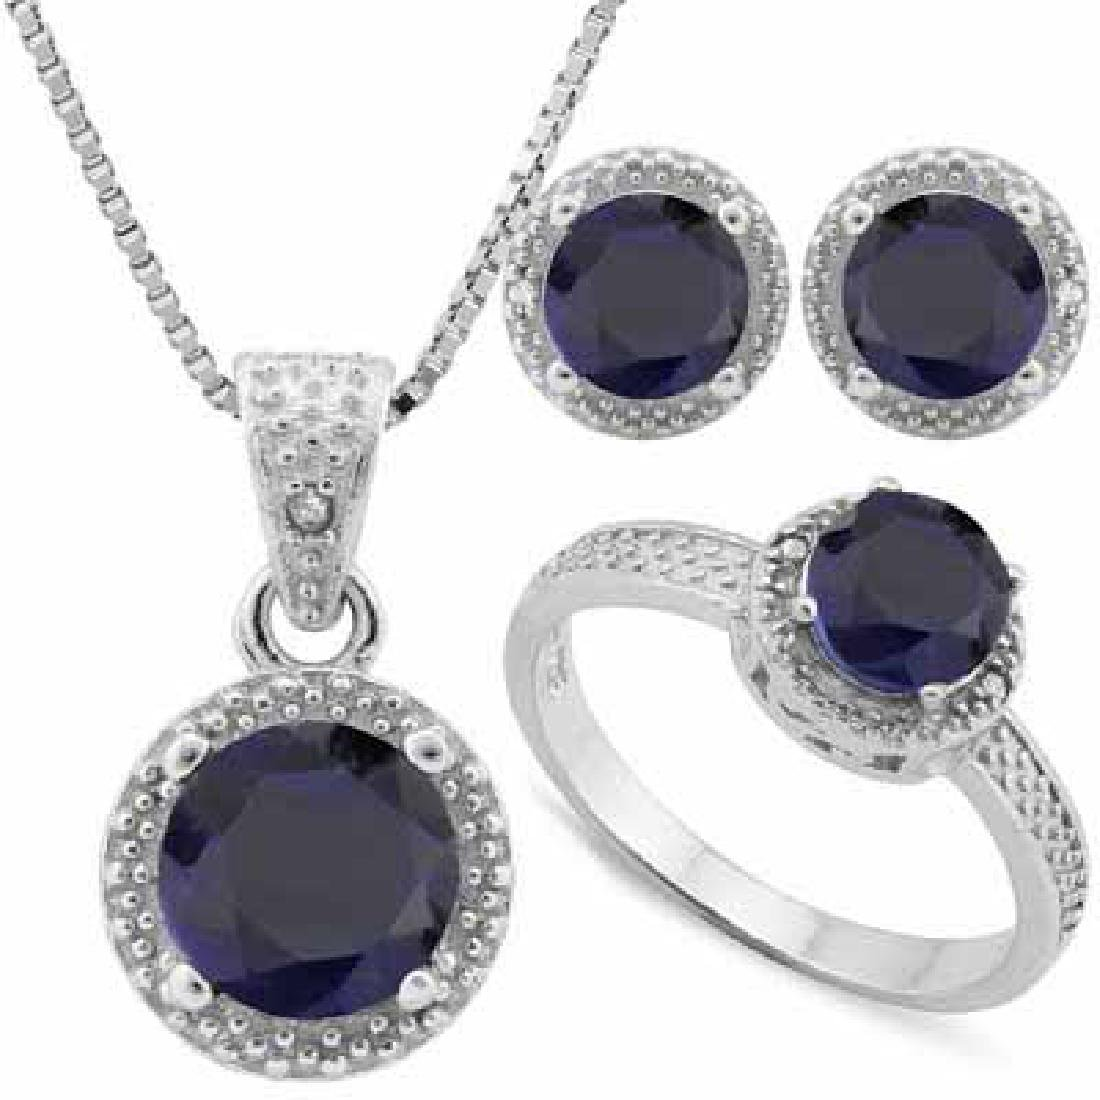 4.856 CARAT TW DYED GENUINE SAPPHIRE & GENUINE DIAMOND